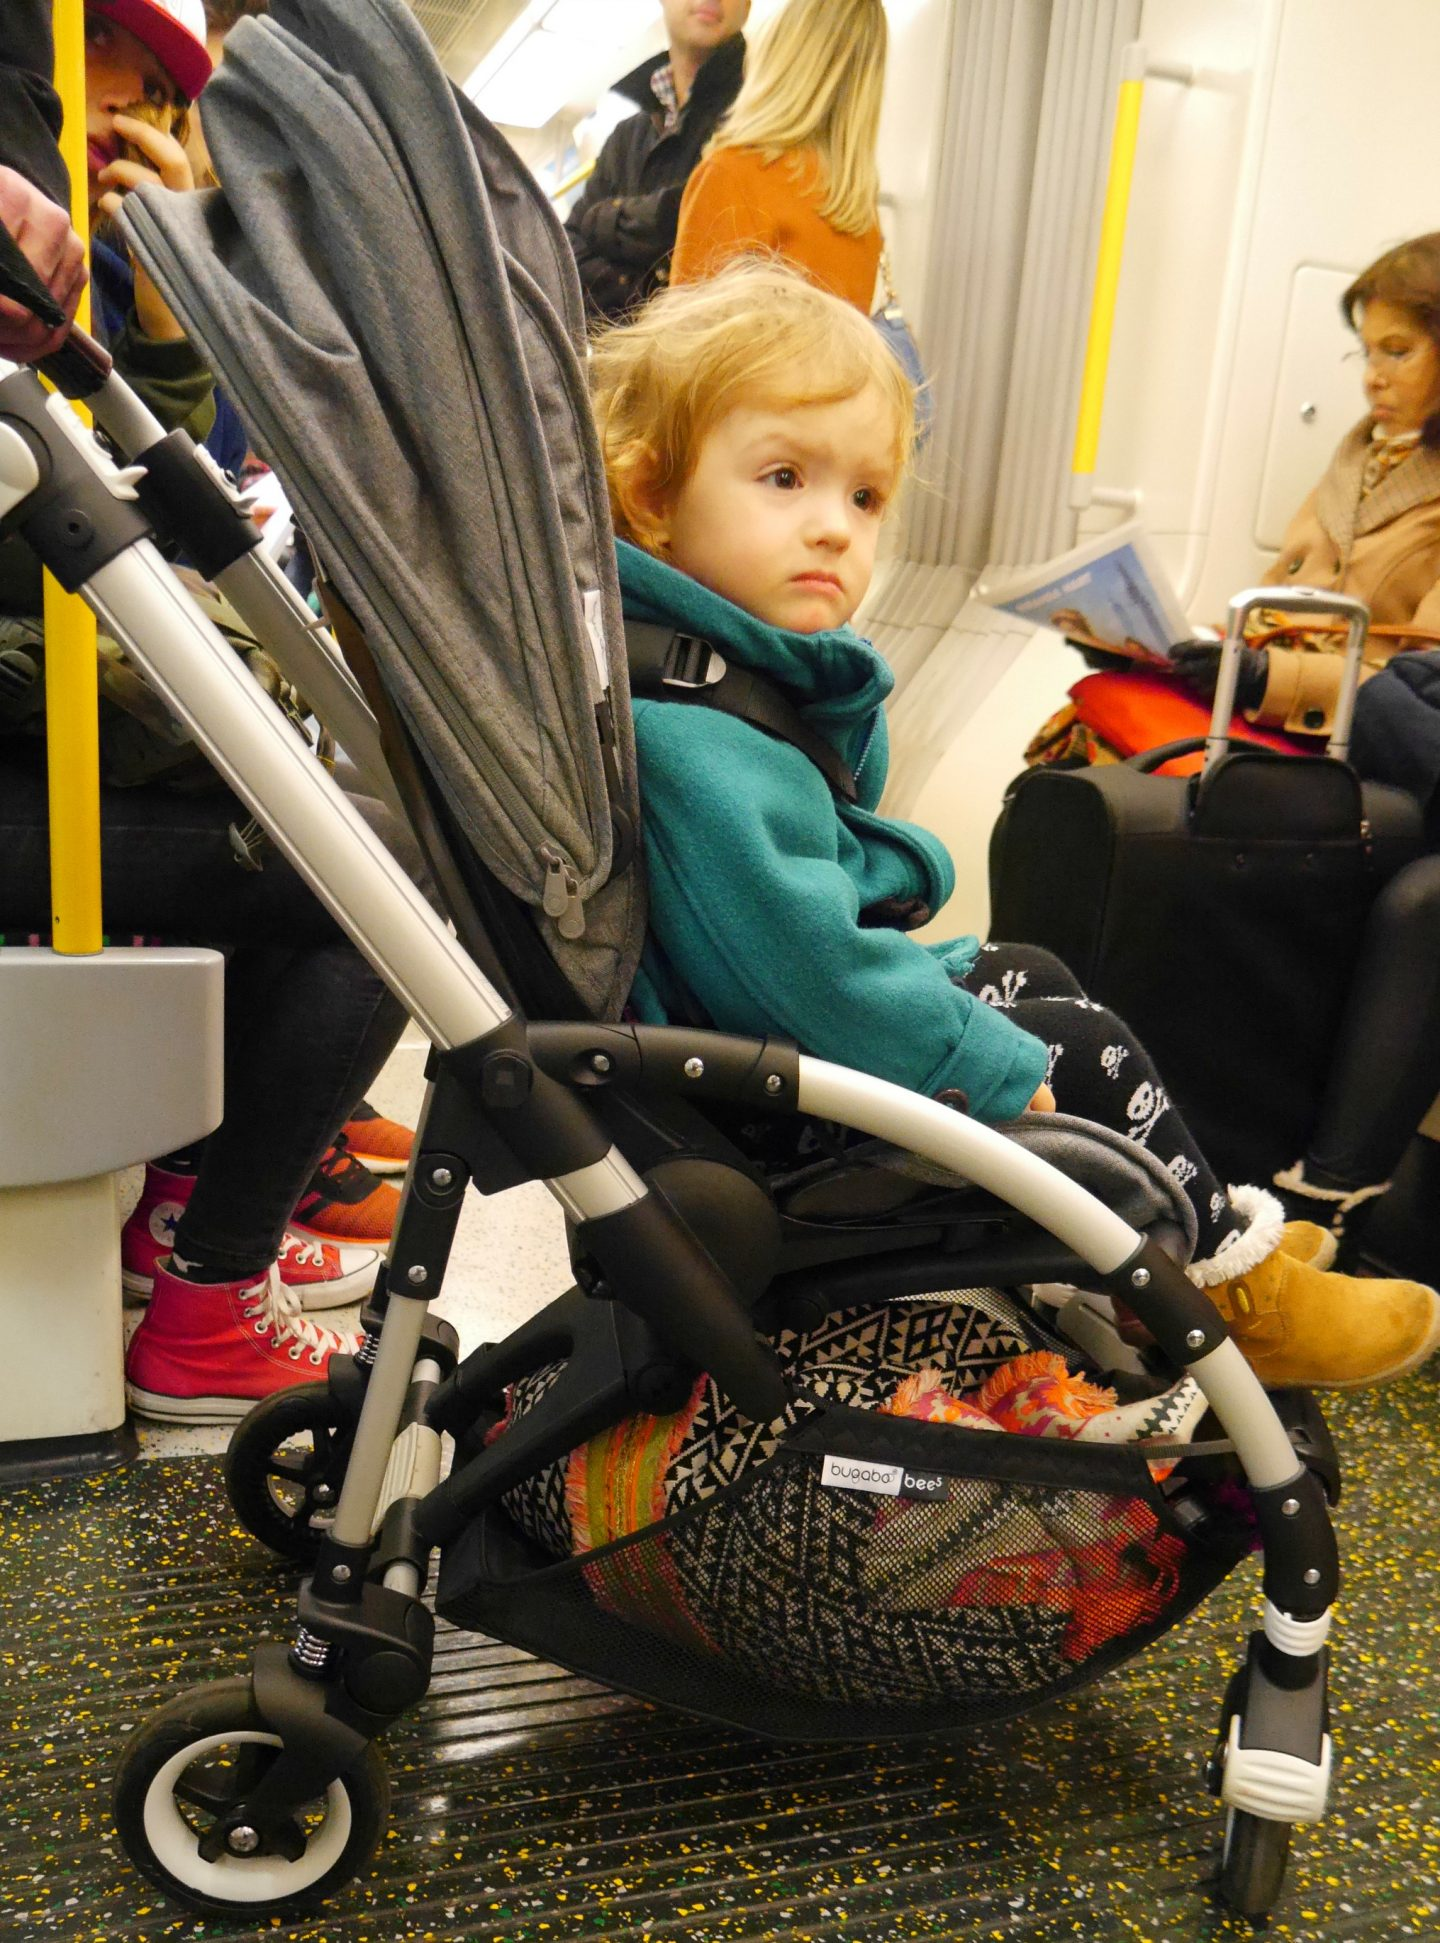 Bugaboo Bee 5 on public transport - how to get around on public transport with a baby